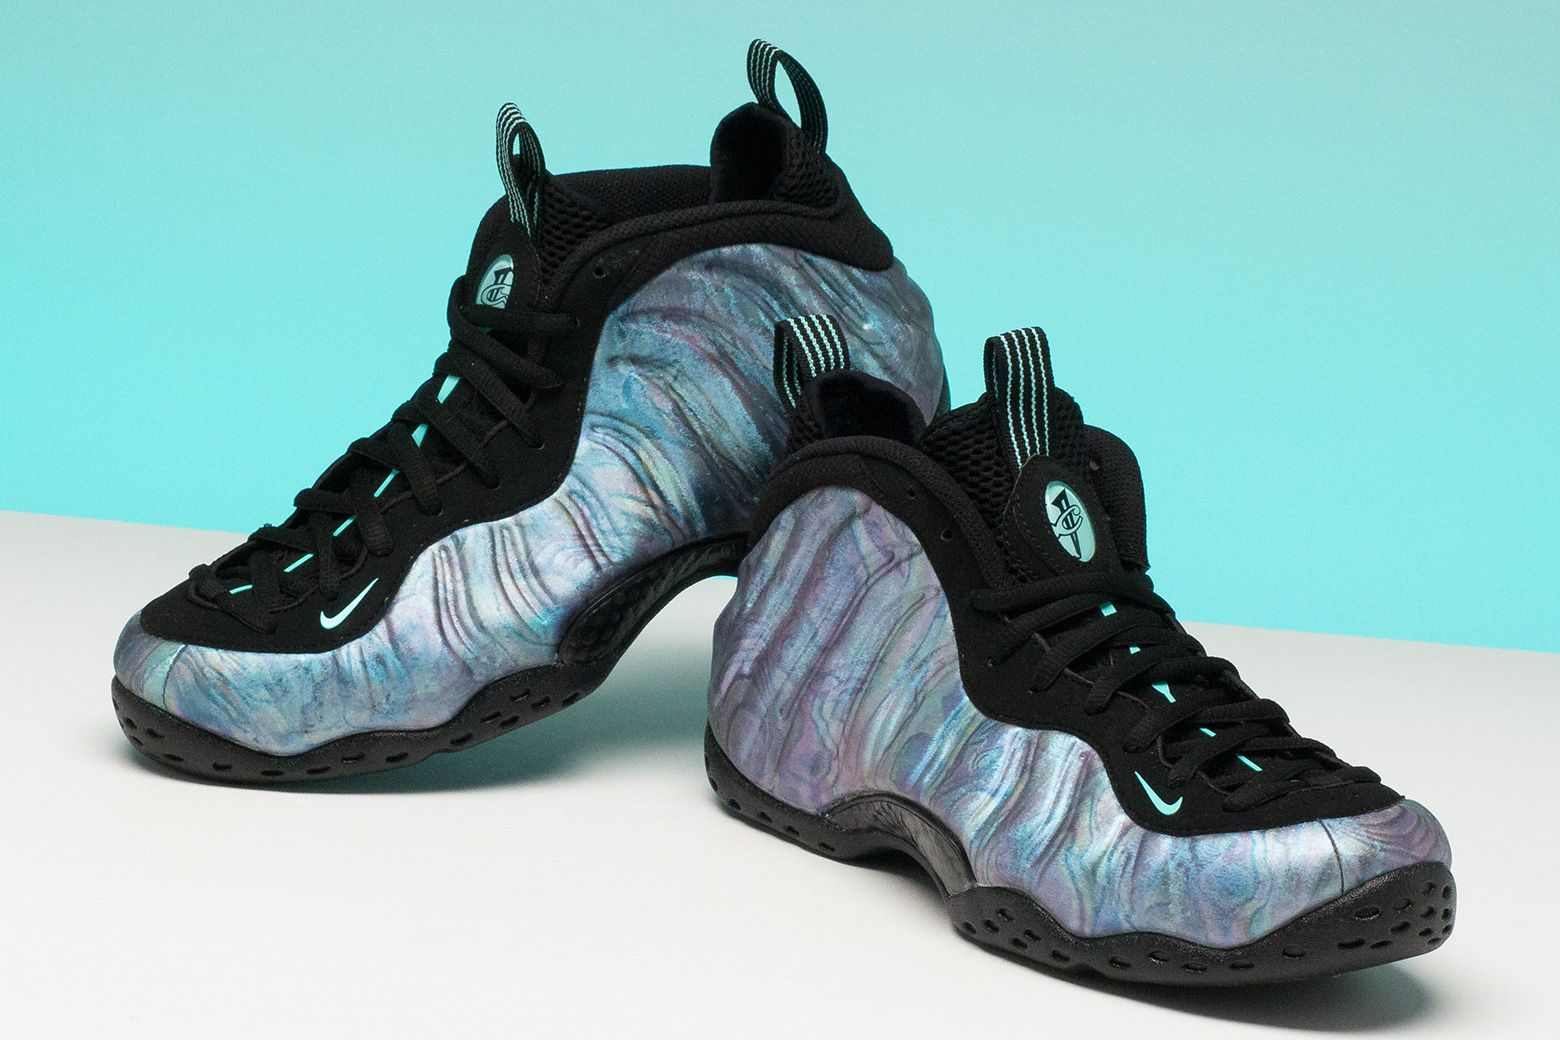 NikeAirFoampositeOneHologram1Survey of shoes